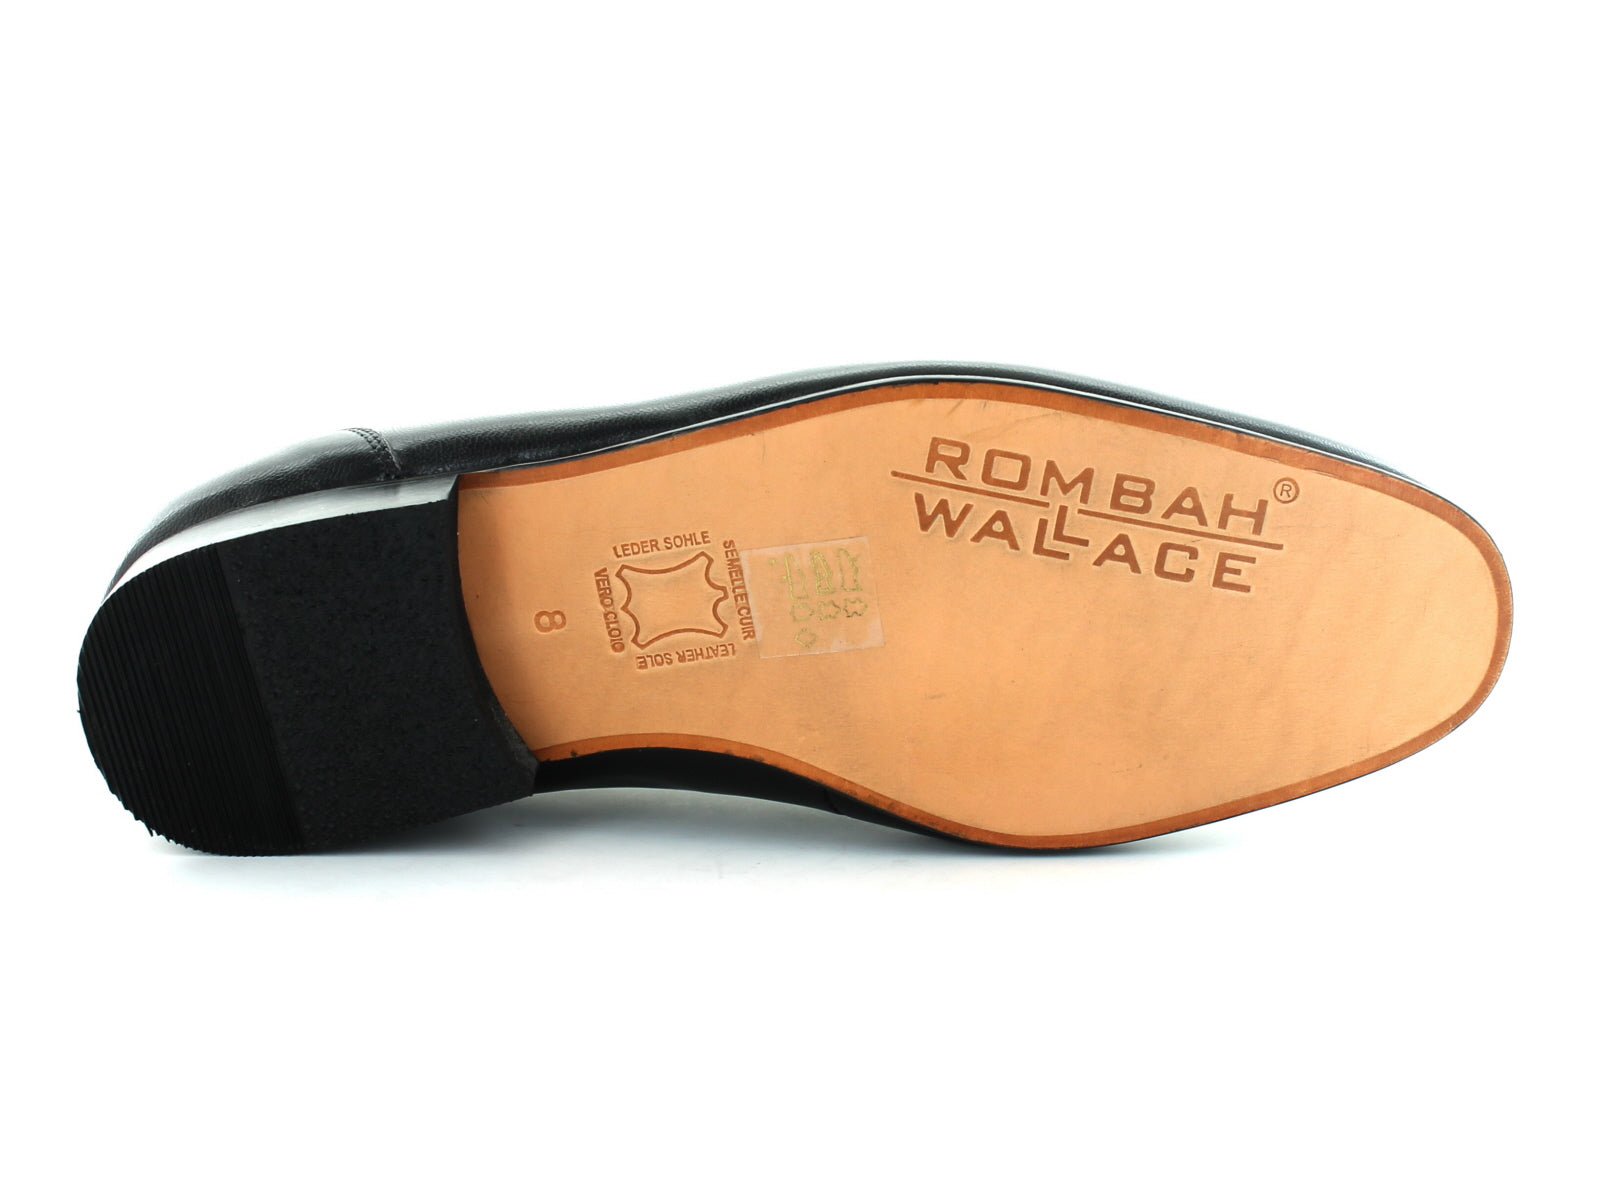 Rombah Wallace Romsey 8309 in Black Leather sole view